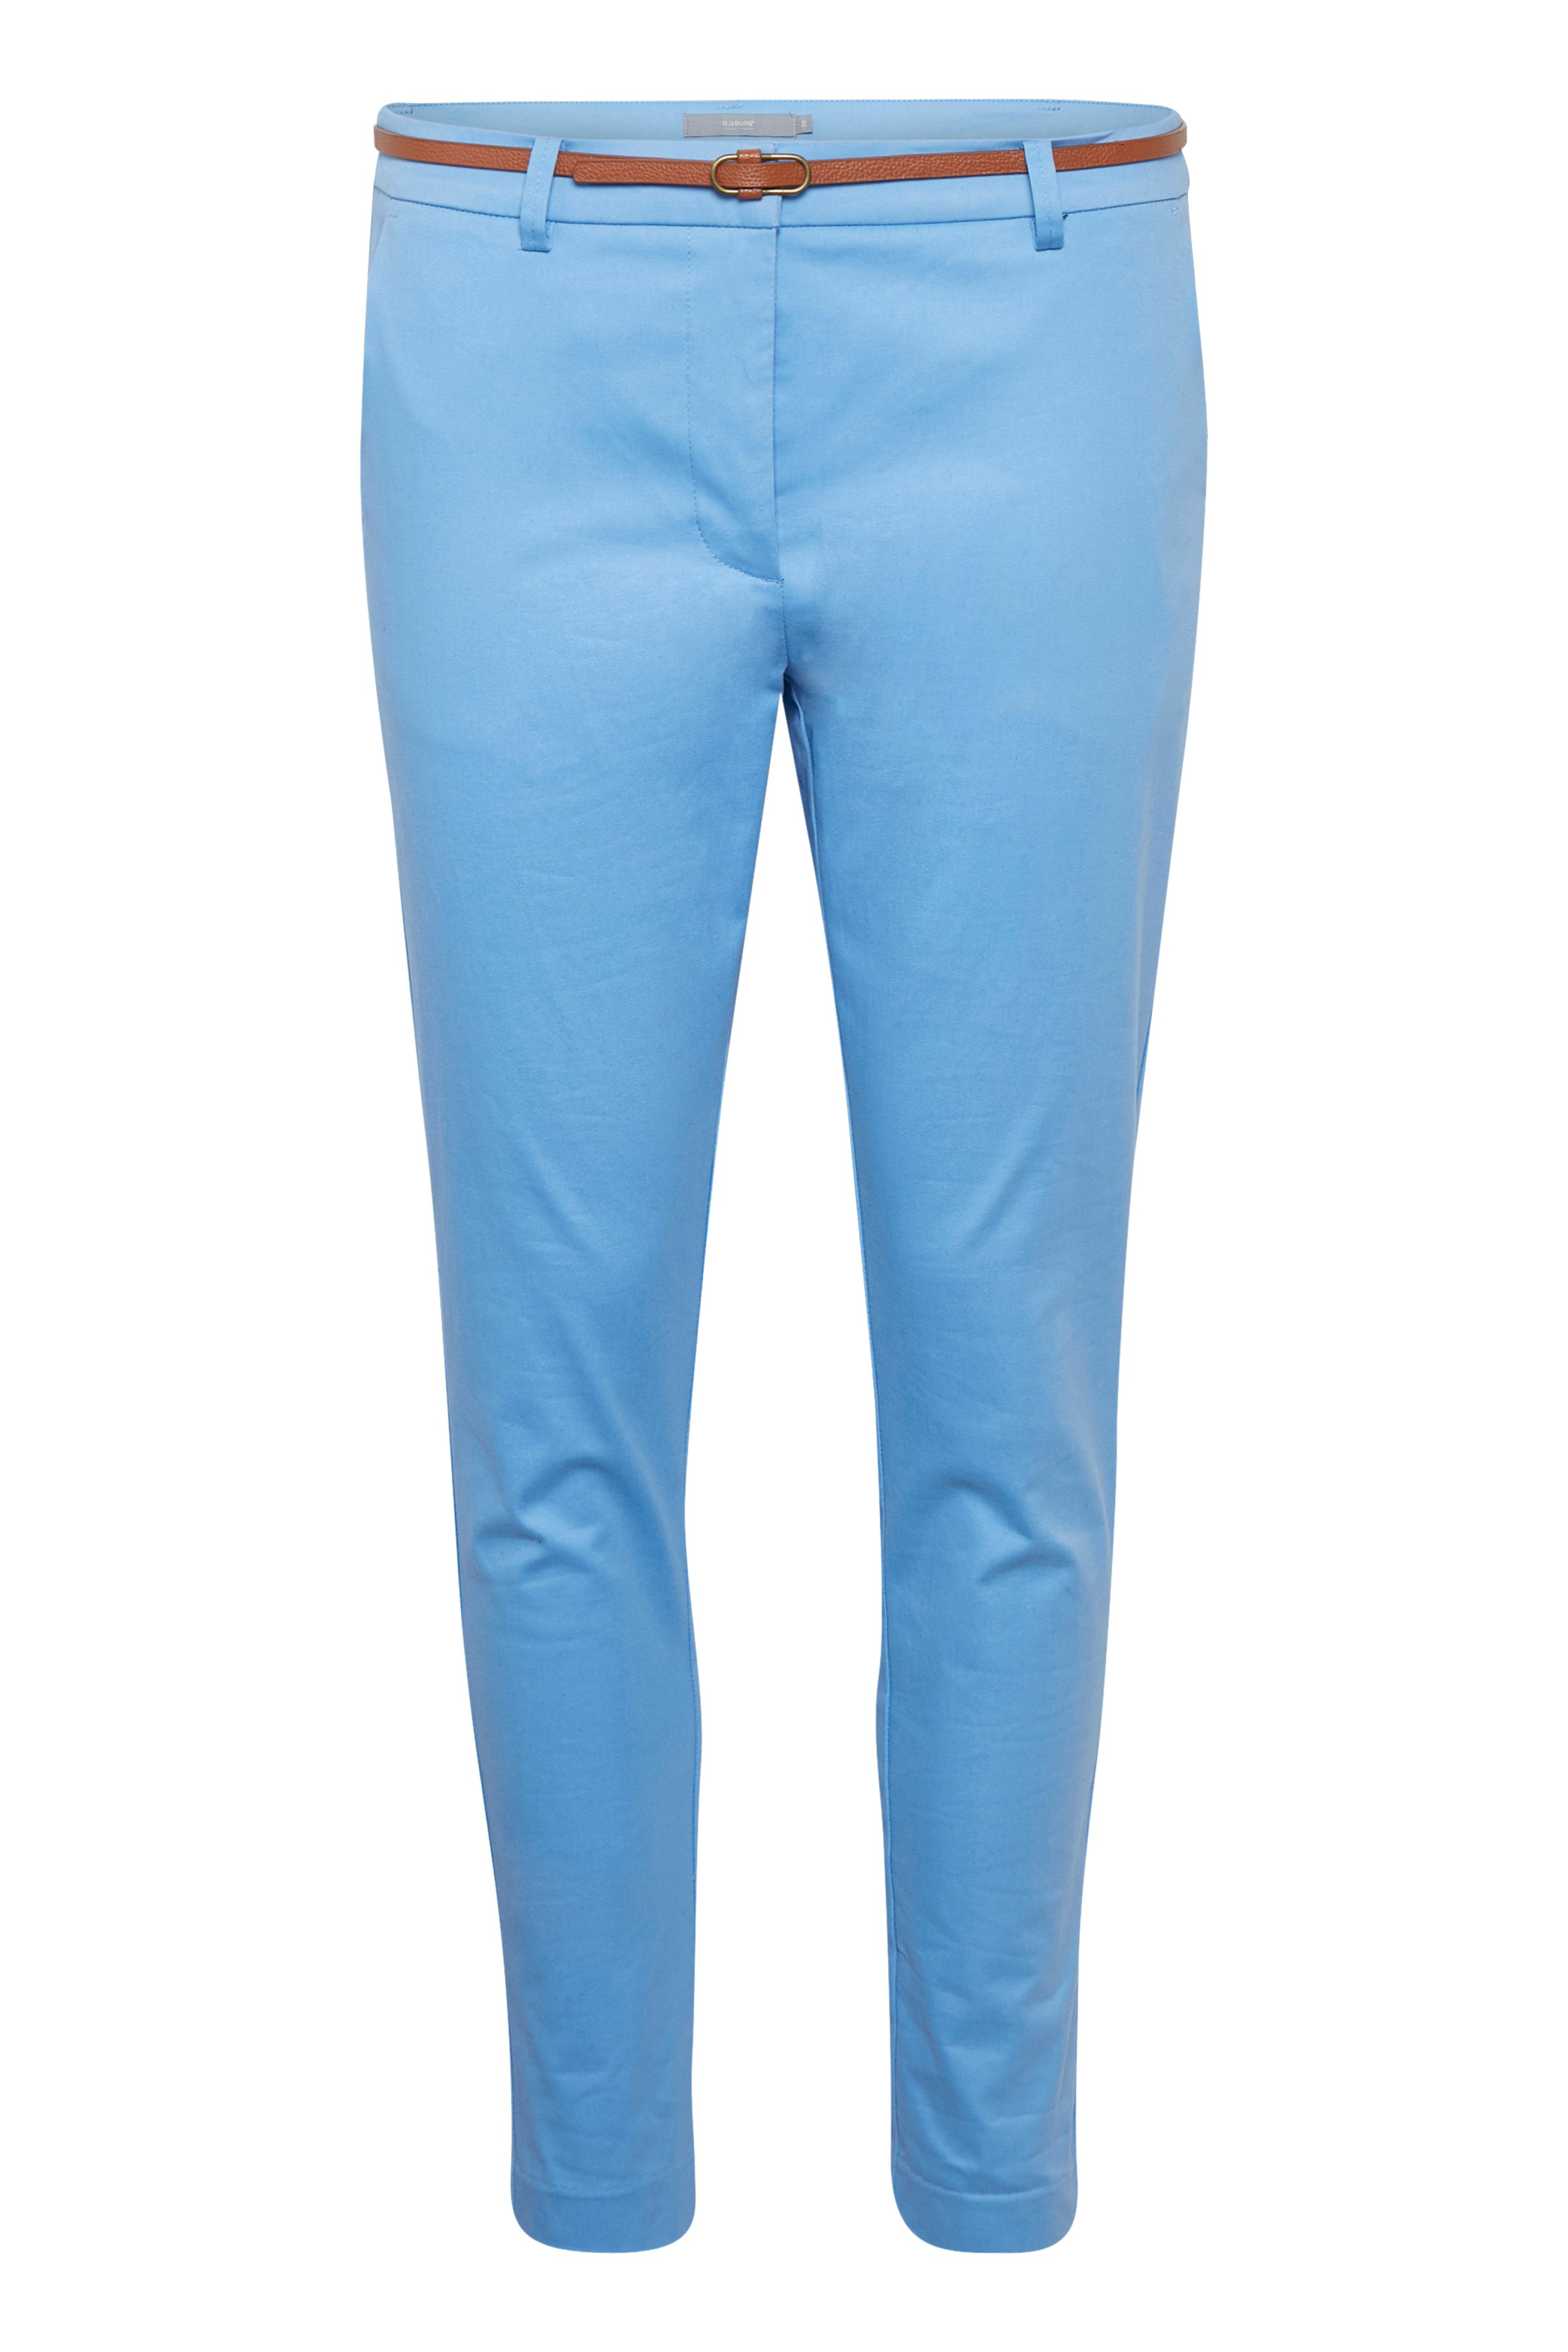 Cornflower Blue Pants Suiting fra b.young – Køb Cornflower Blue Pants Suiting fra str. 34-46 her